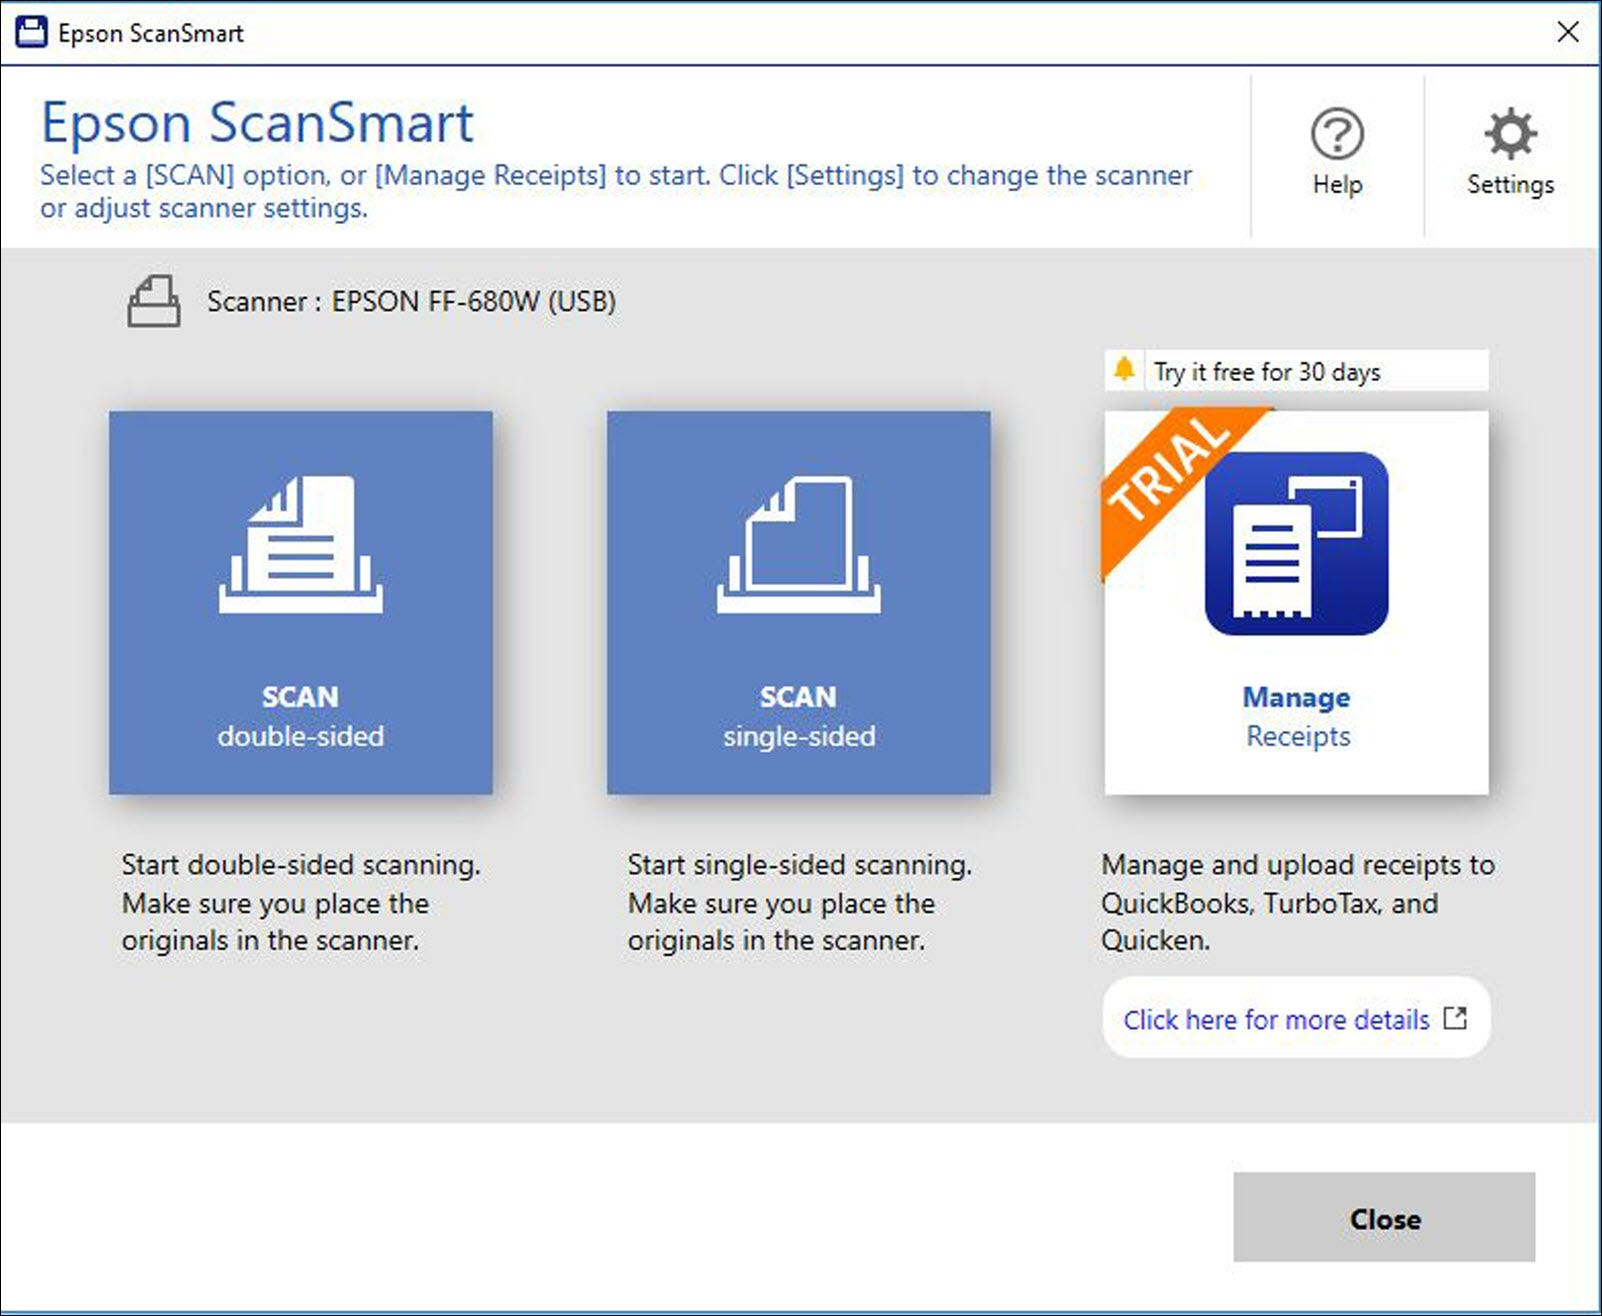 The main menu in the Espon ScanSmart software.